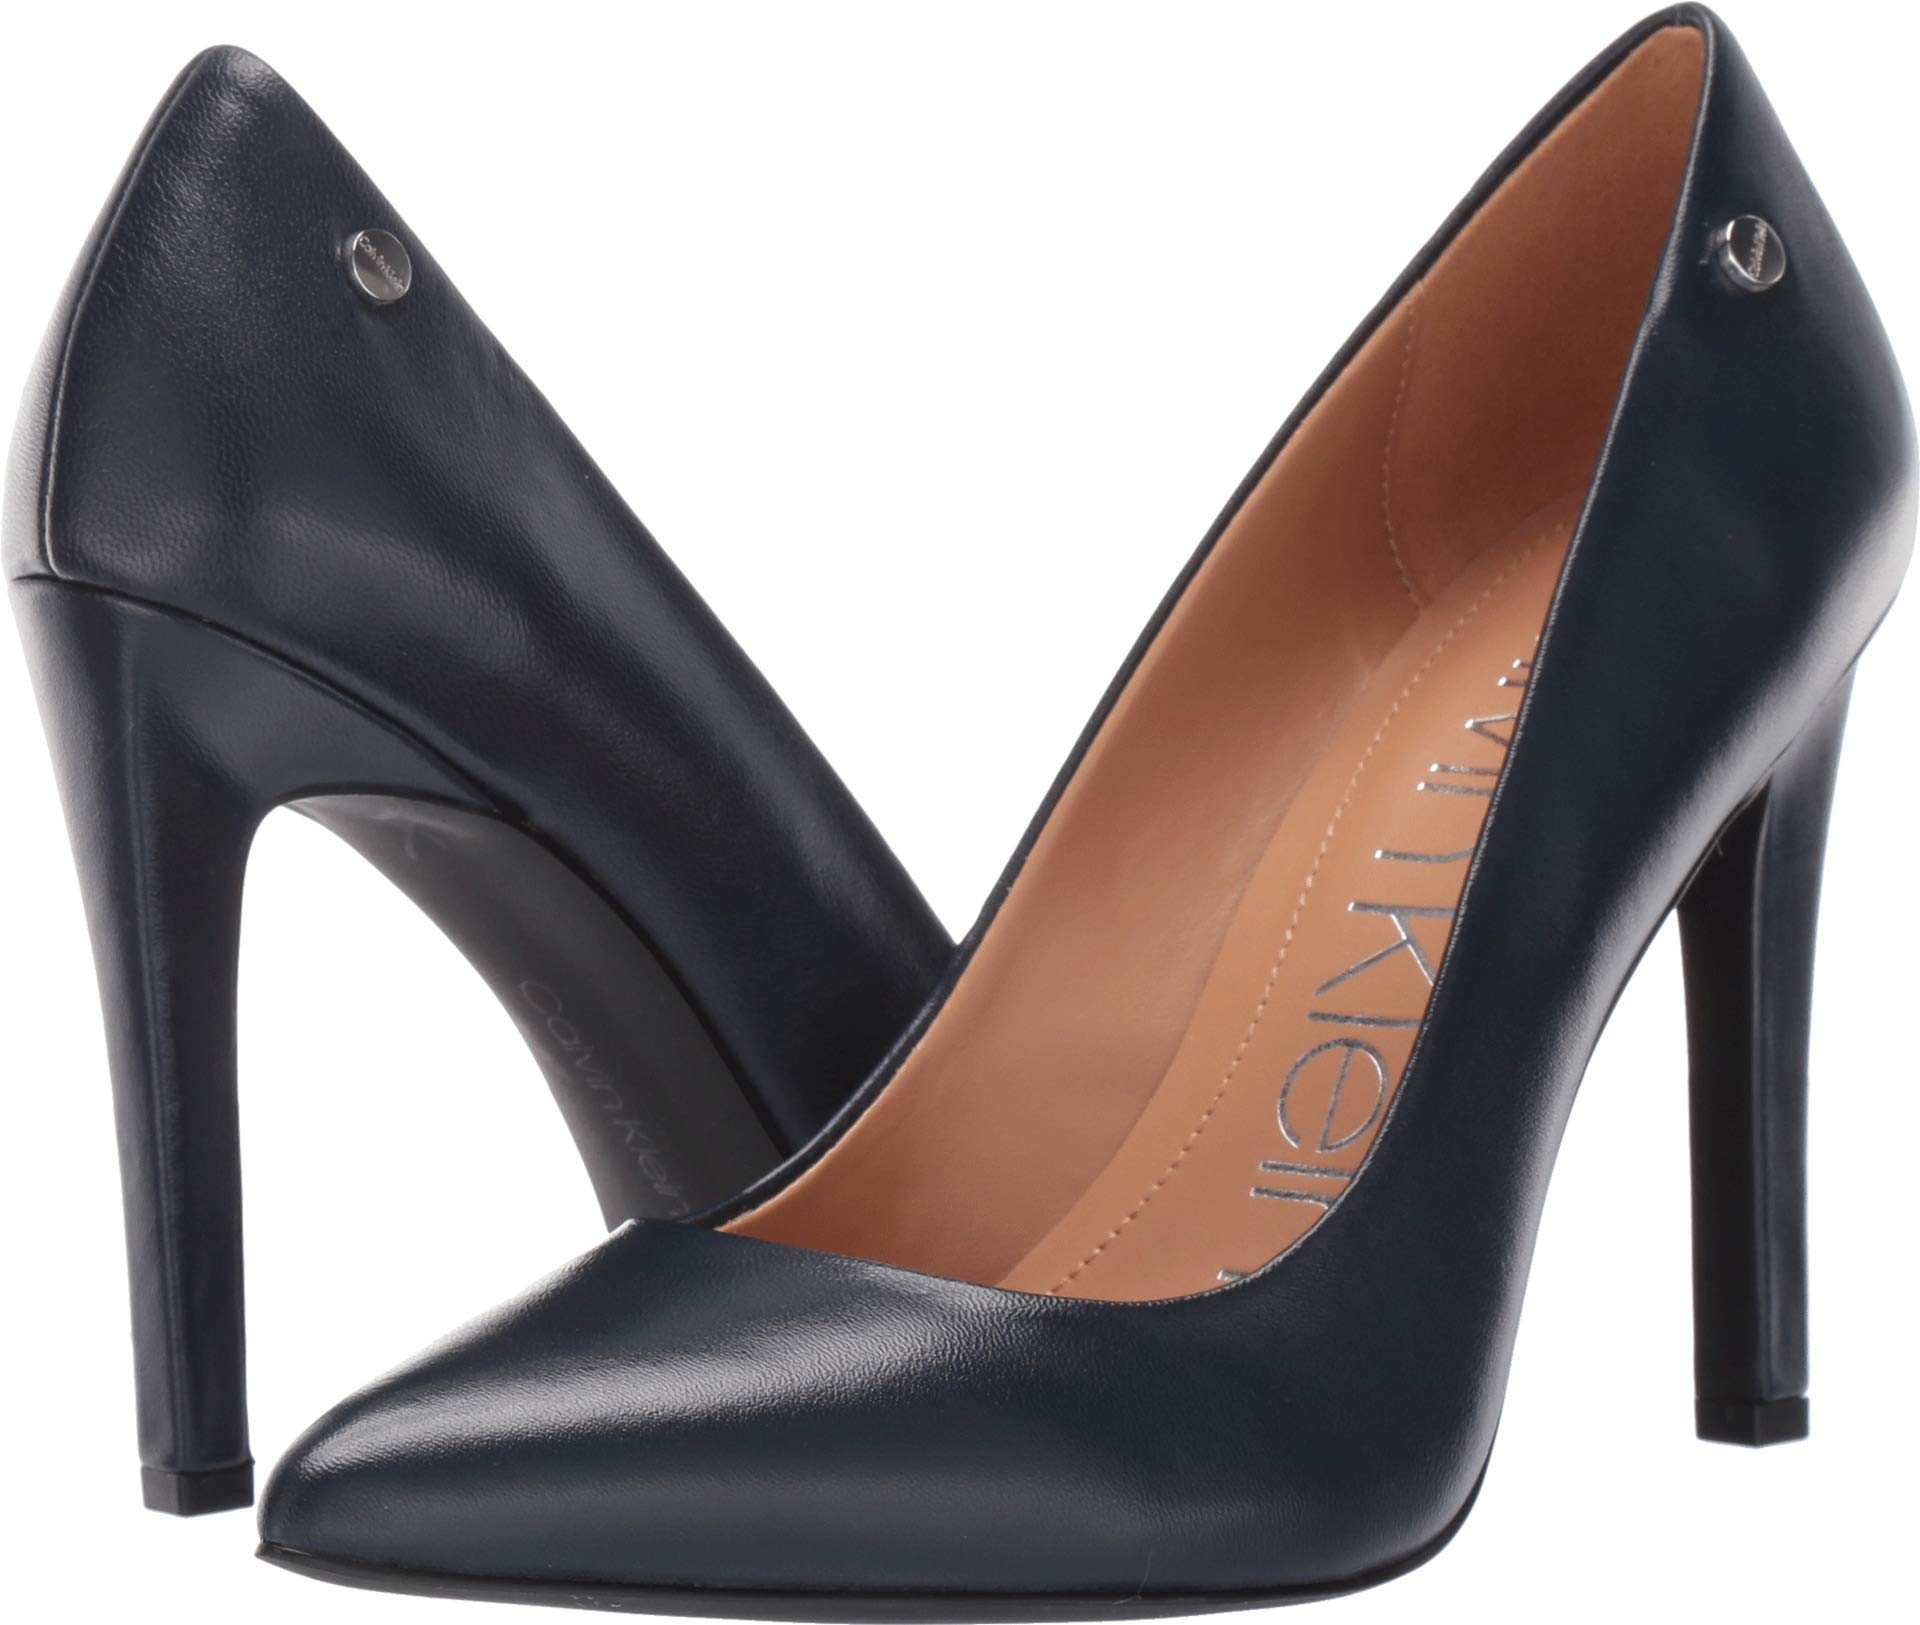 Calvin Klein Women's Brady Pump Navy Leather 8 M US